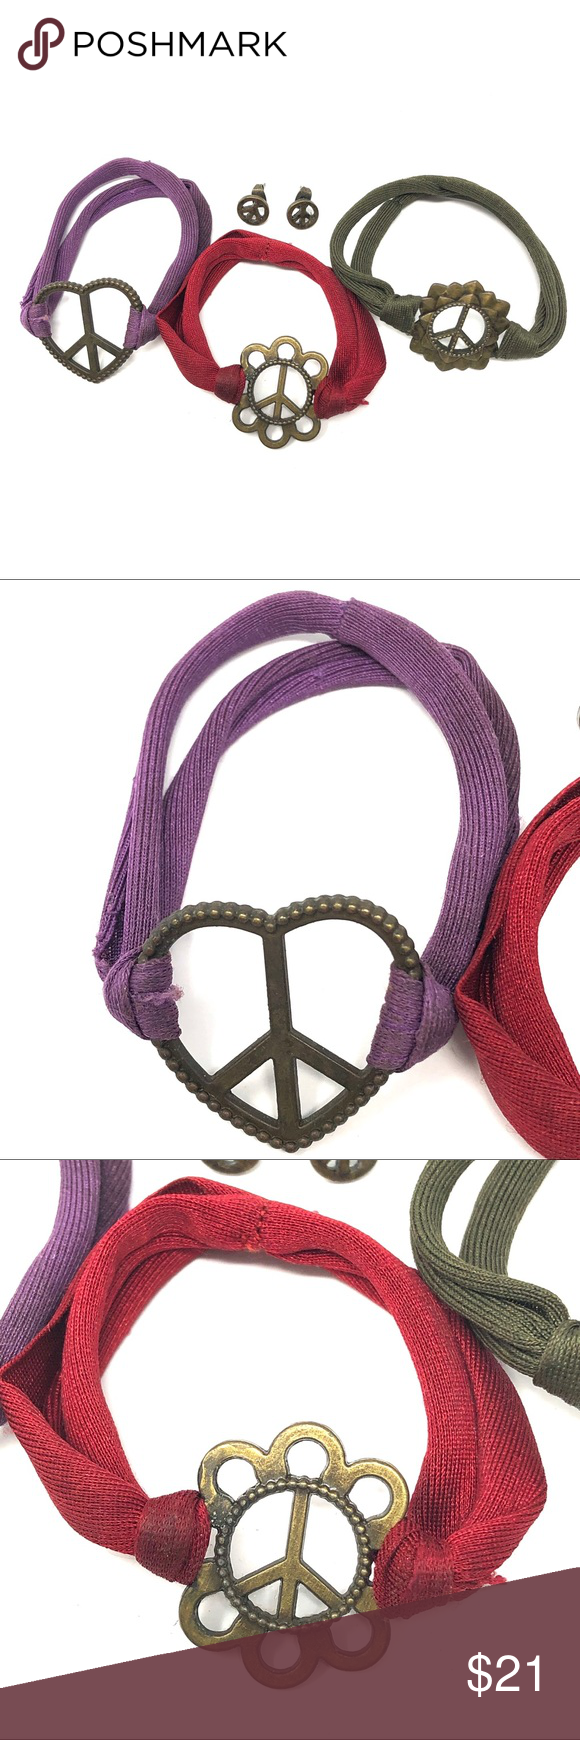 Download 4 Pc Peace Sign Stretchy Bracelets & Earring Set 4 Piece ...